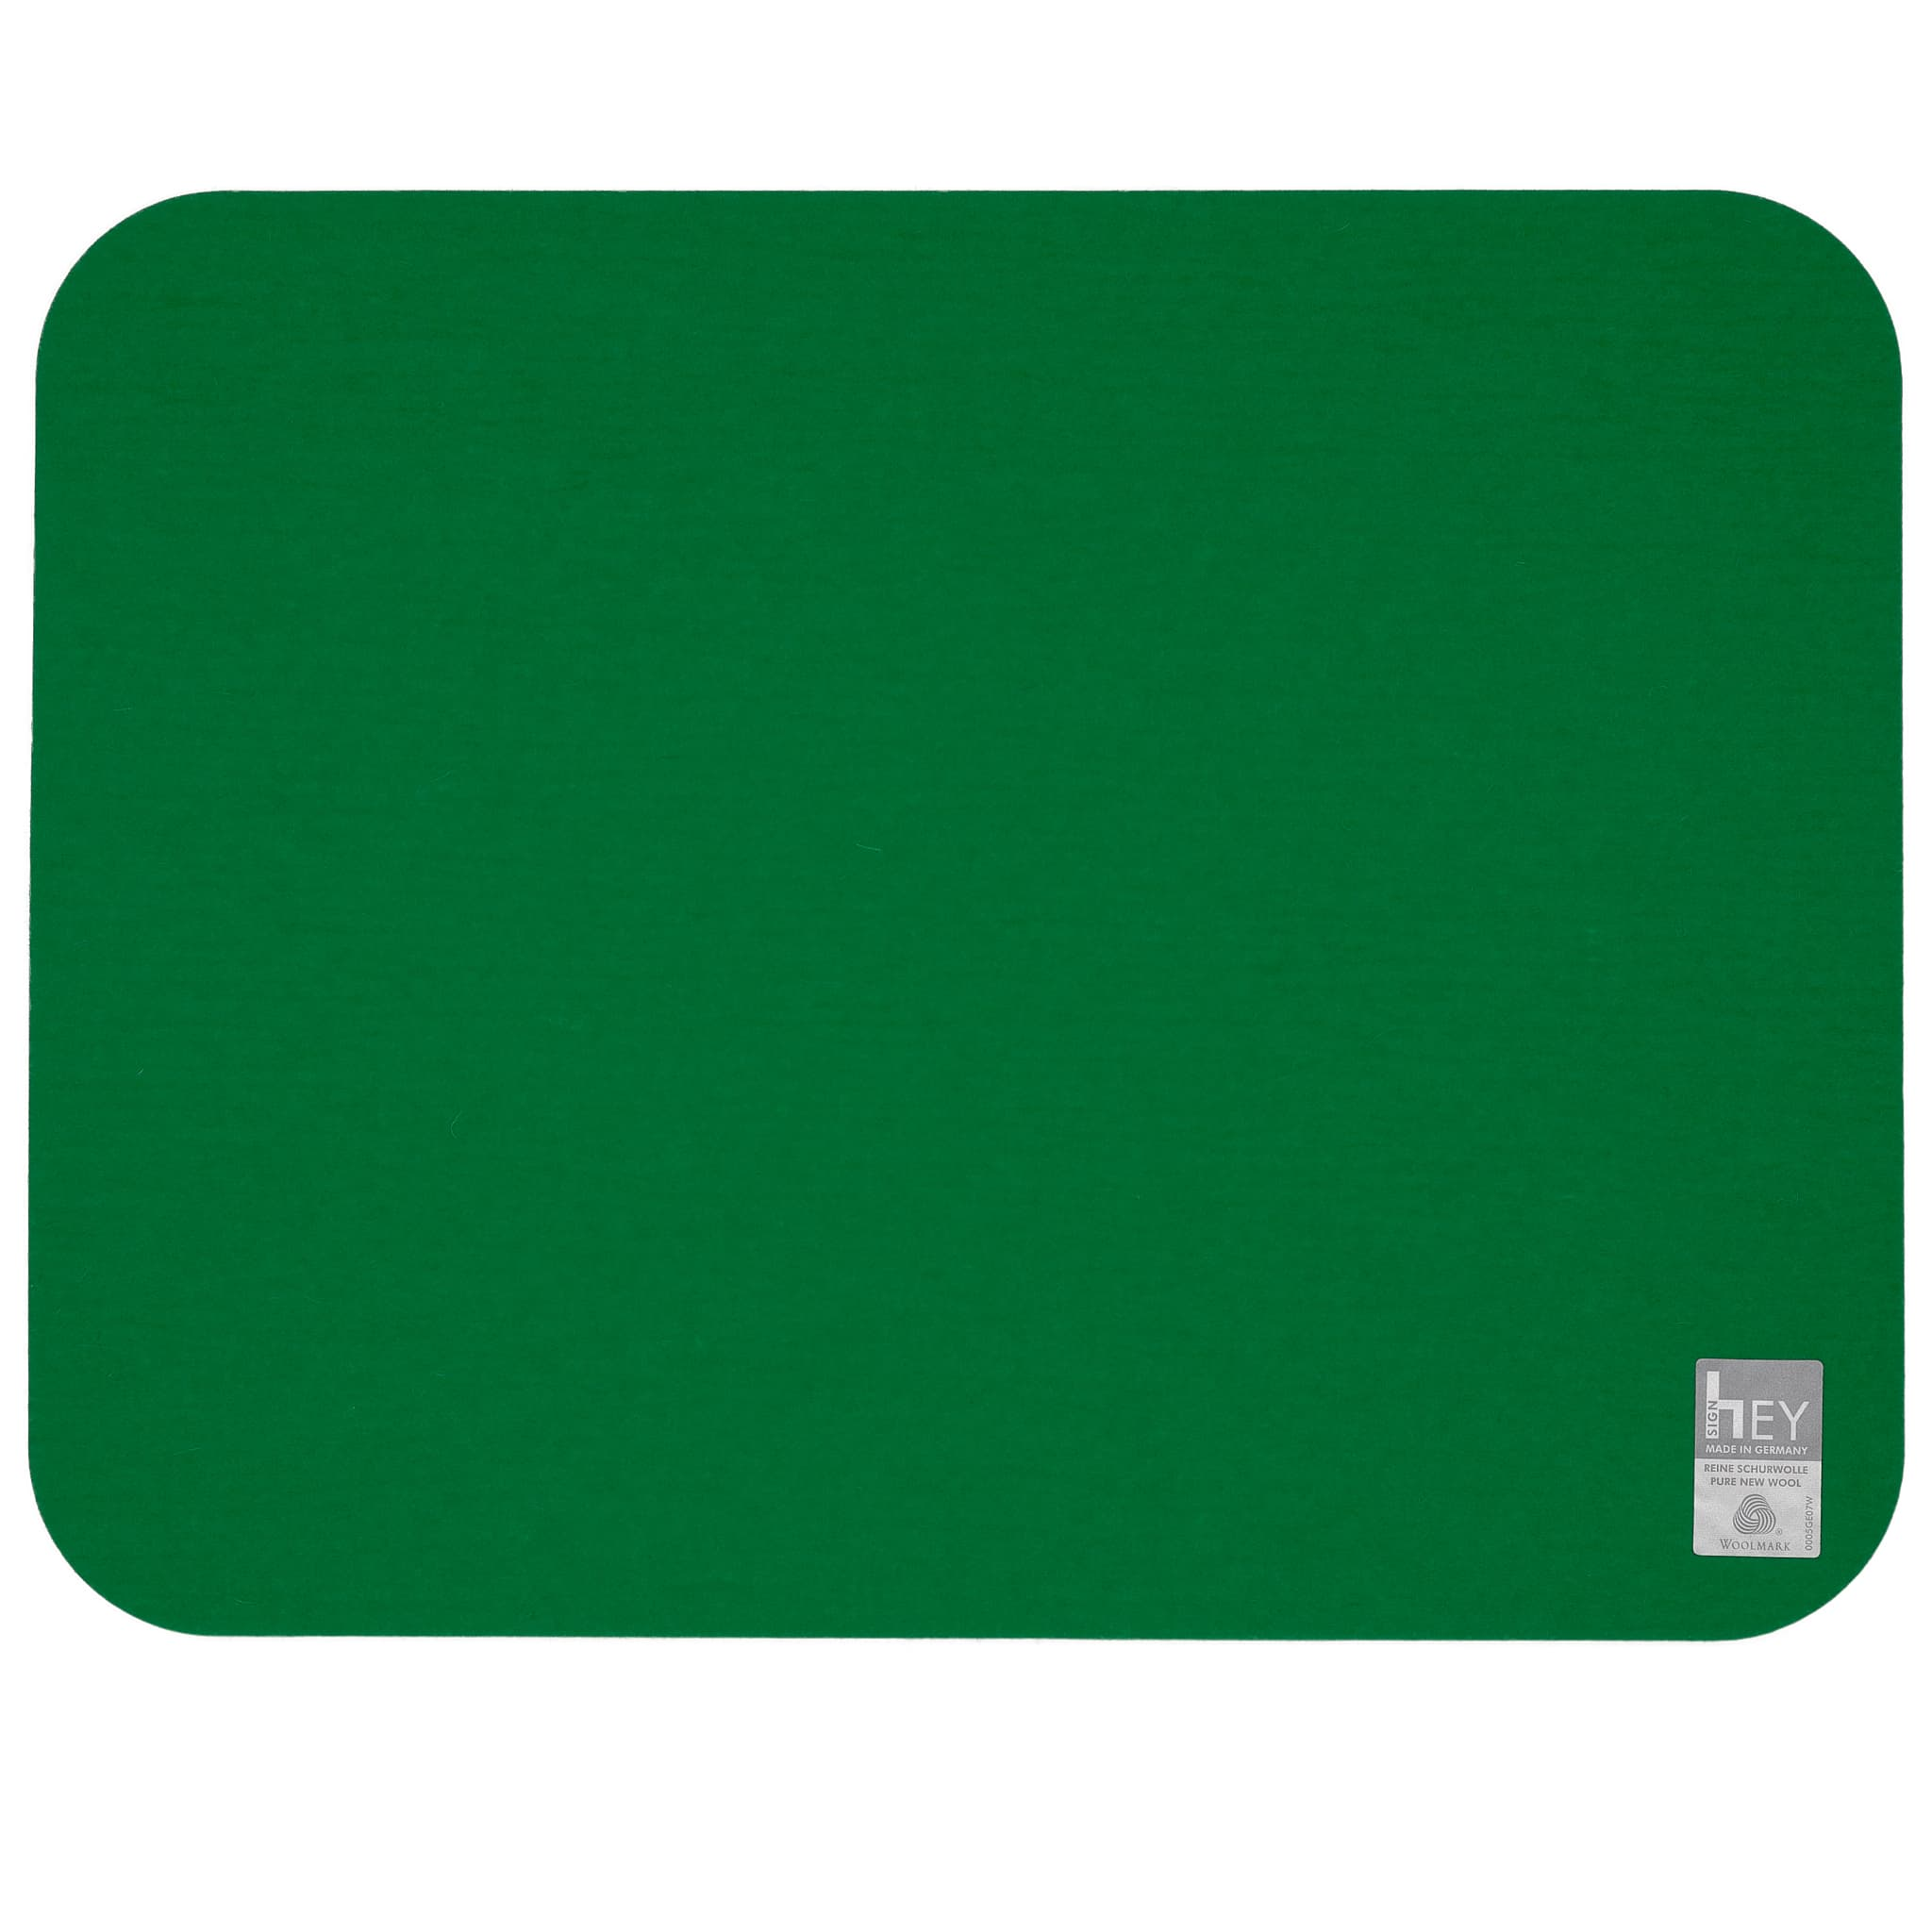 Rectangular Felt Placemat in Dark-Green by Hey-Sign 300134502 looking at Back